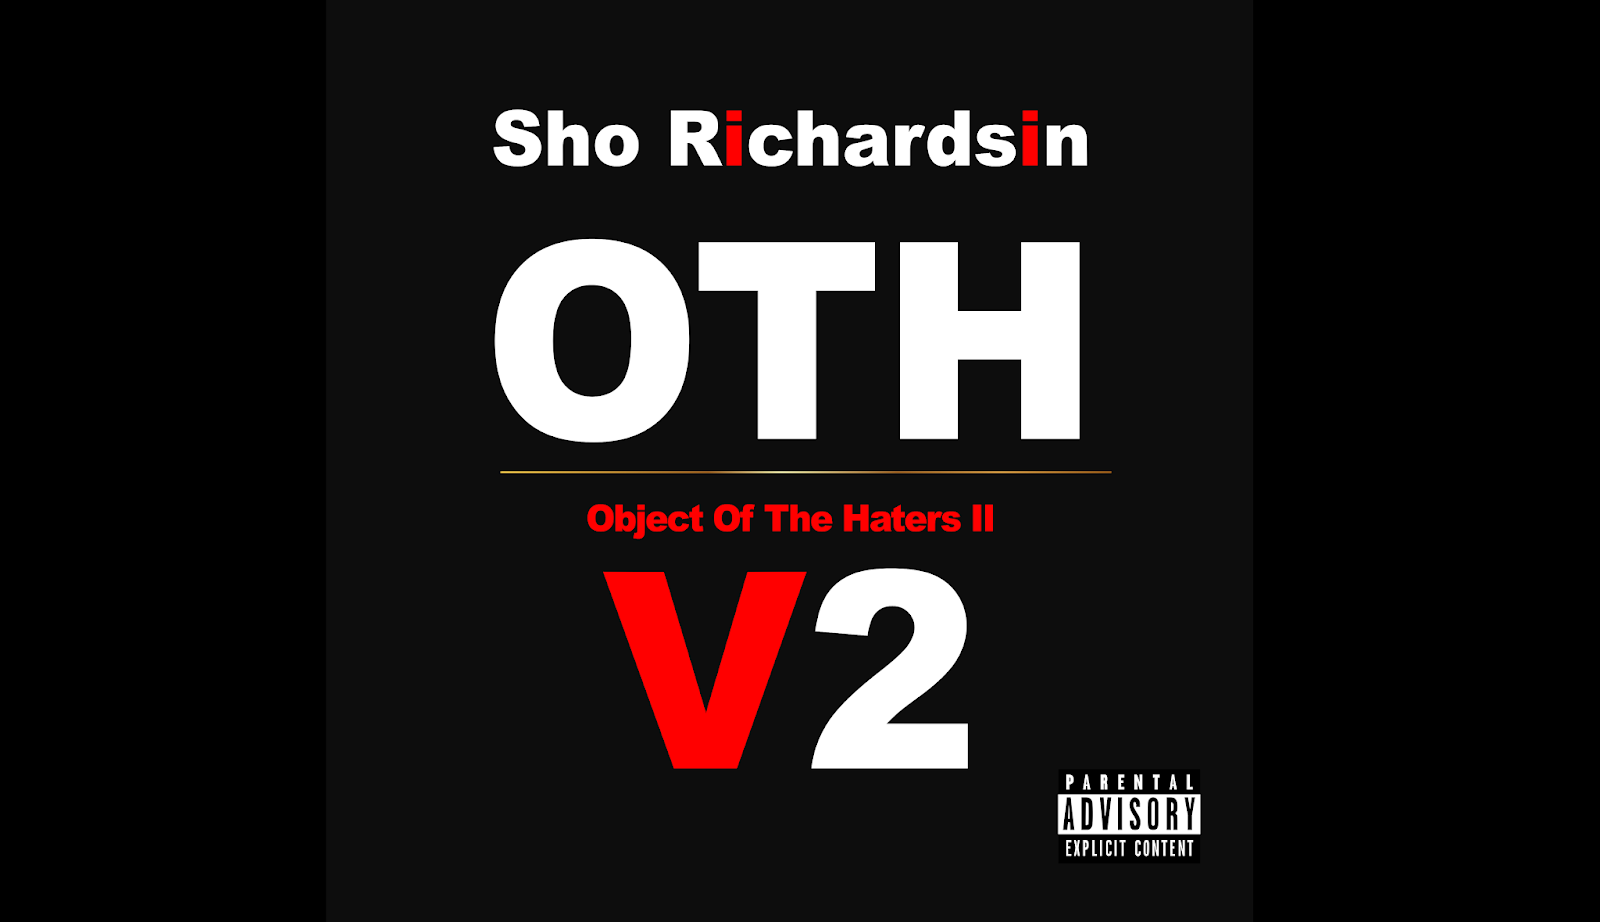 Object Of The Haters Volume 2 (OTHv2) Official Mixtape Release